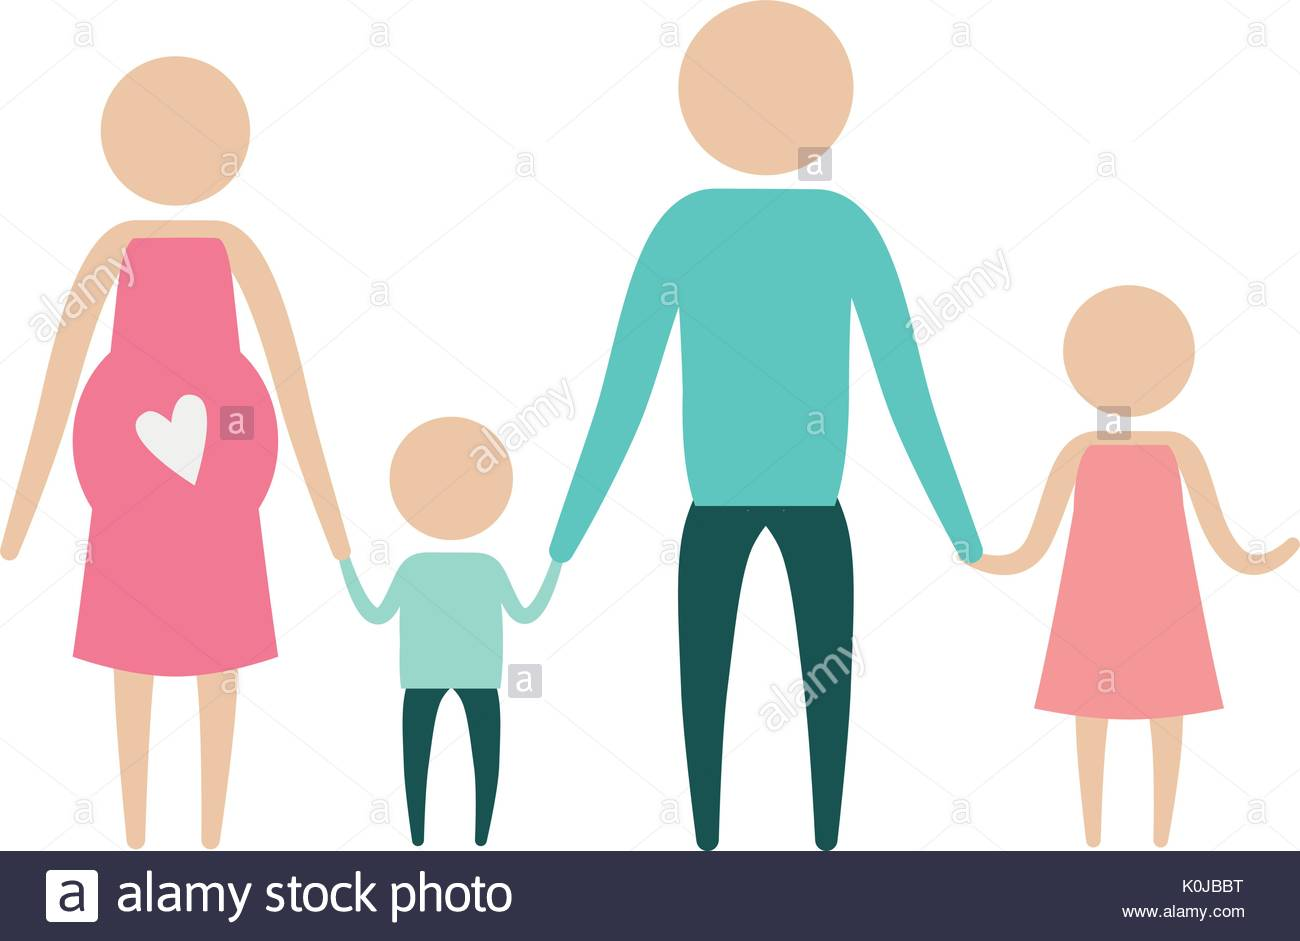 1300x941 Color Silhouette Pictogram Parents With Mother Pregnancy